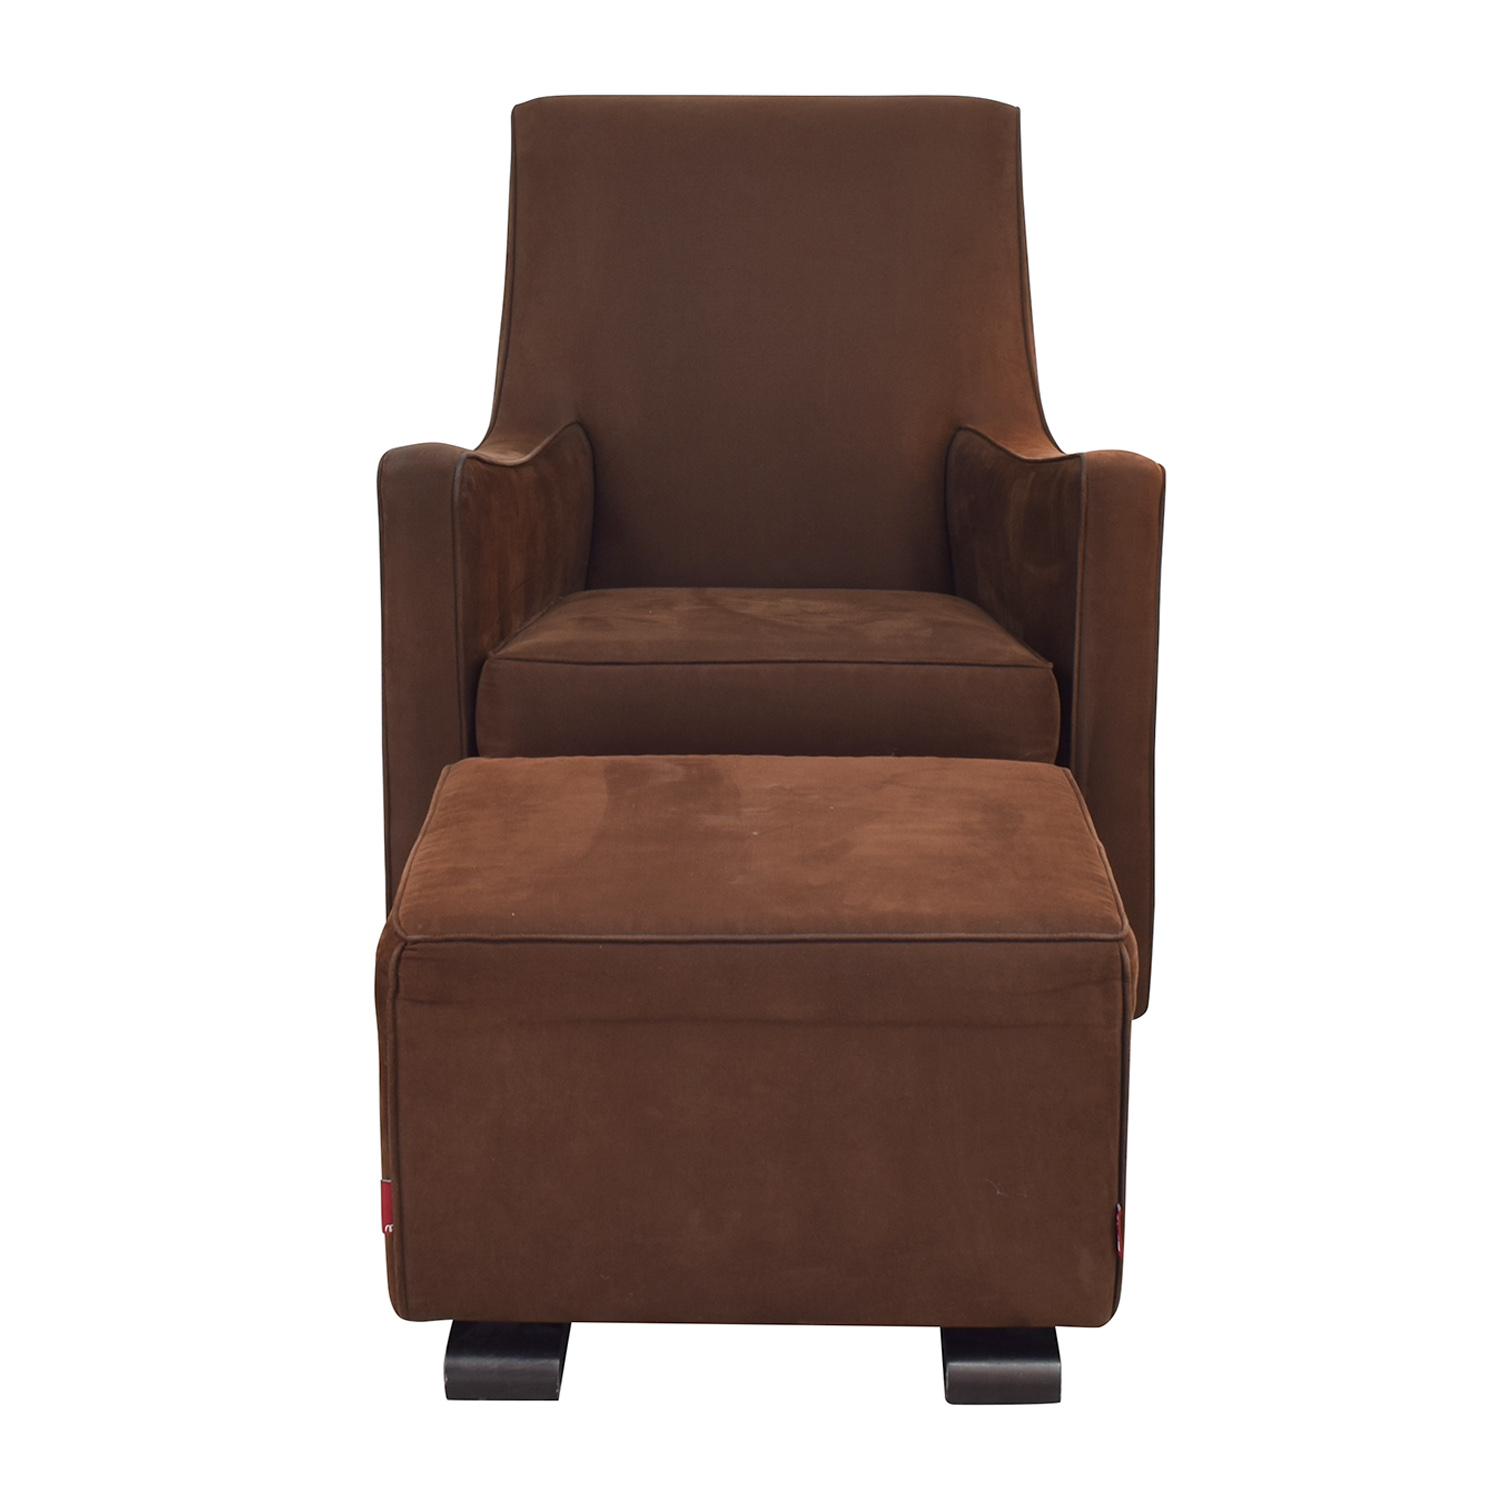 Monte Design Monte Arm Chair and Ottoman nj